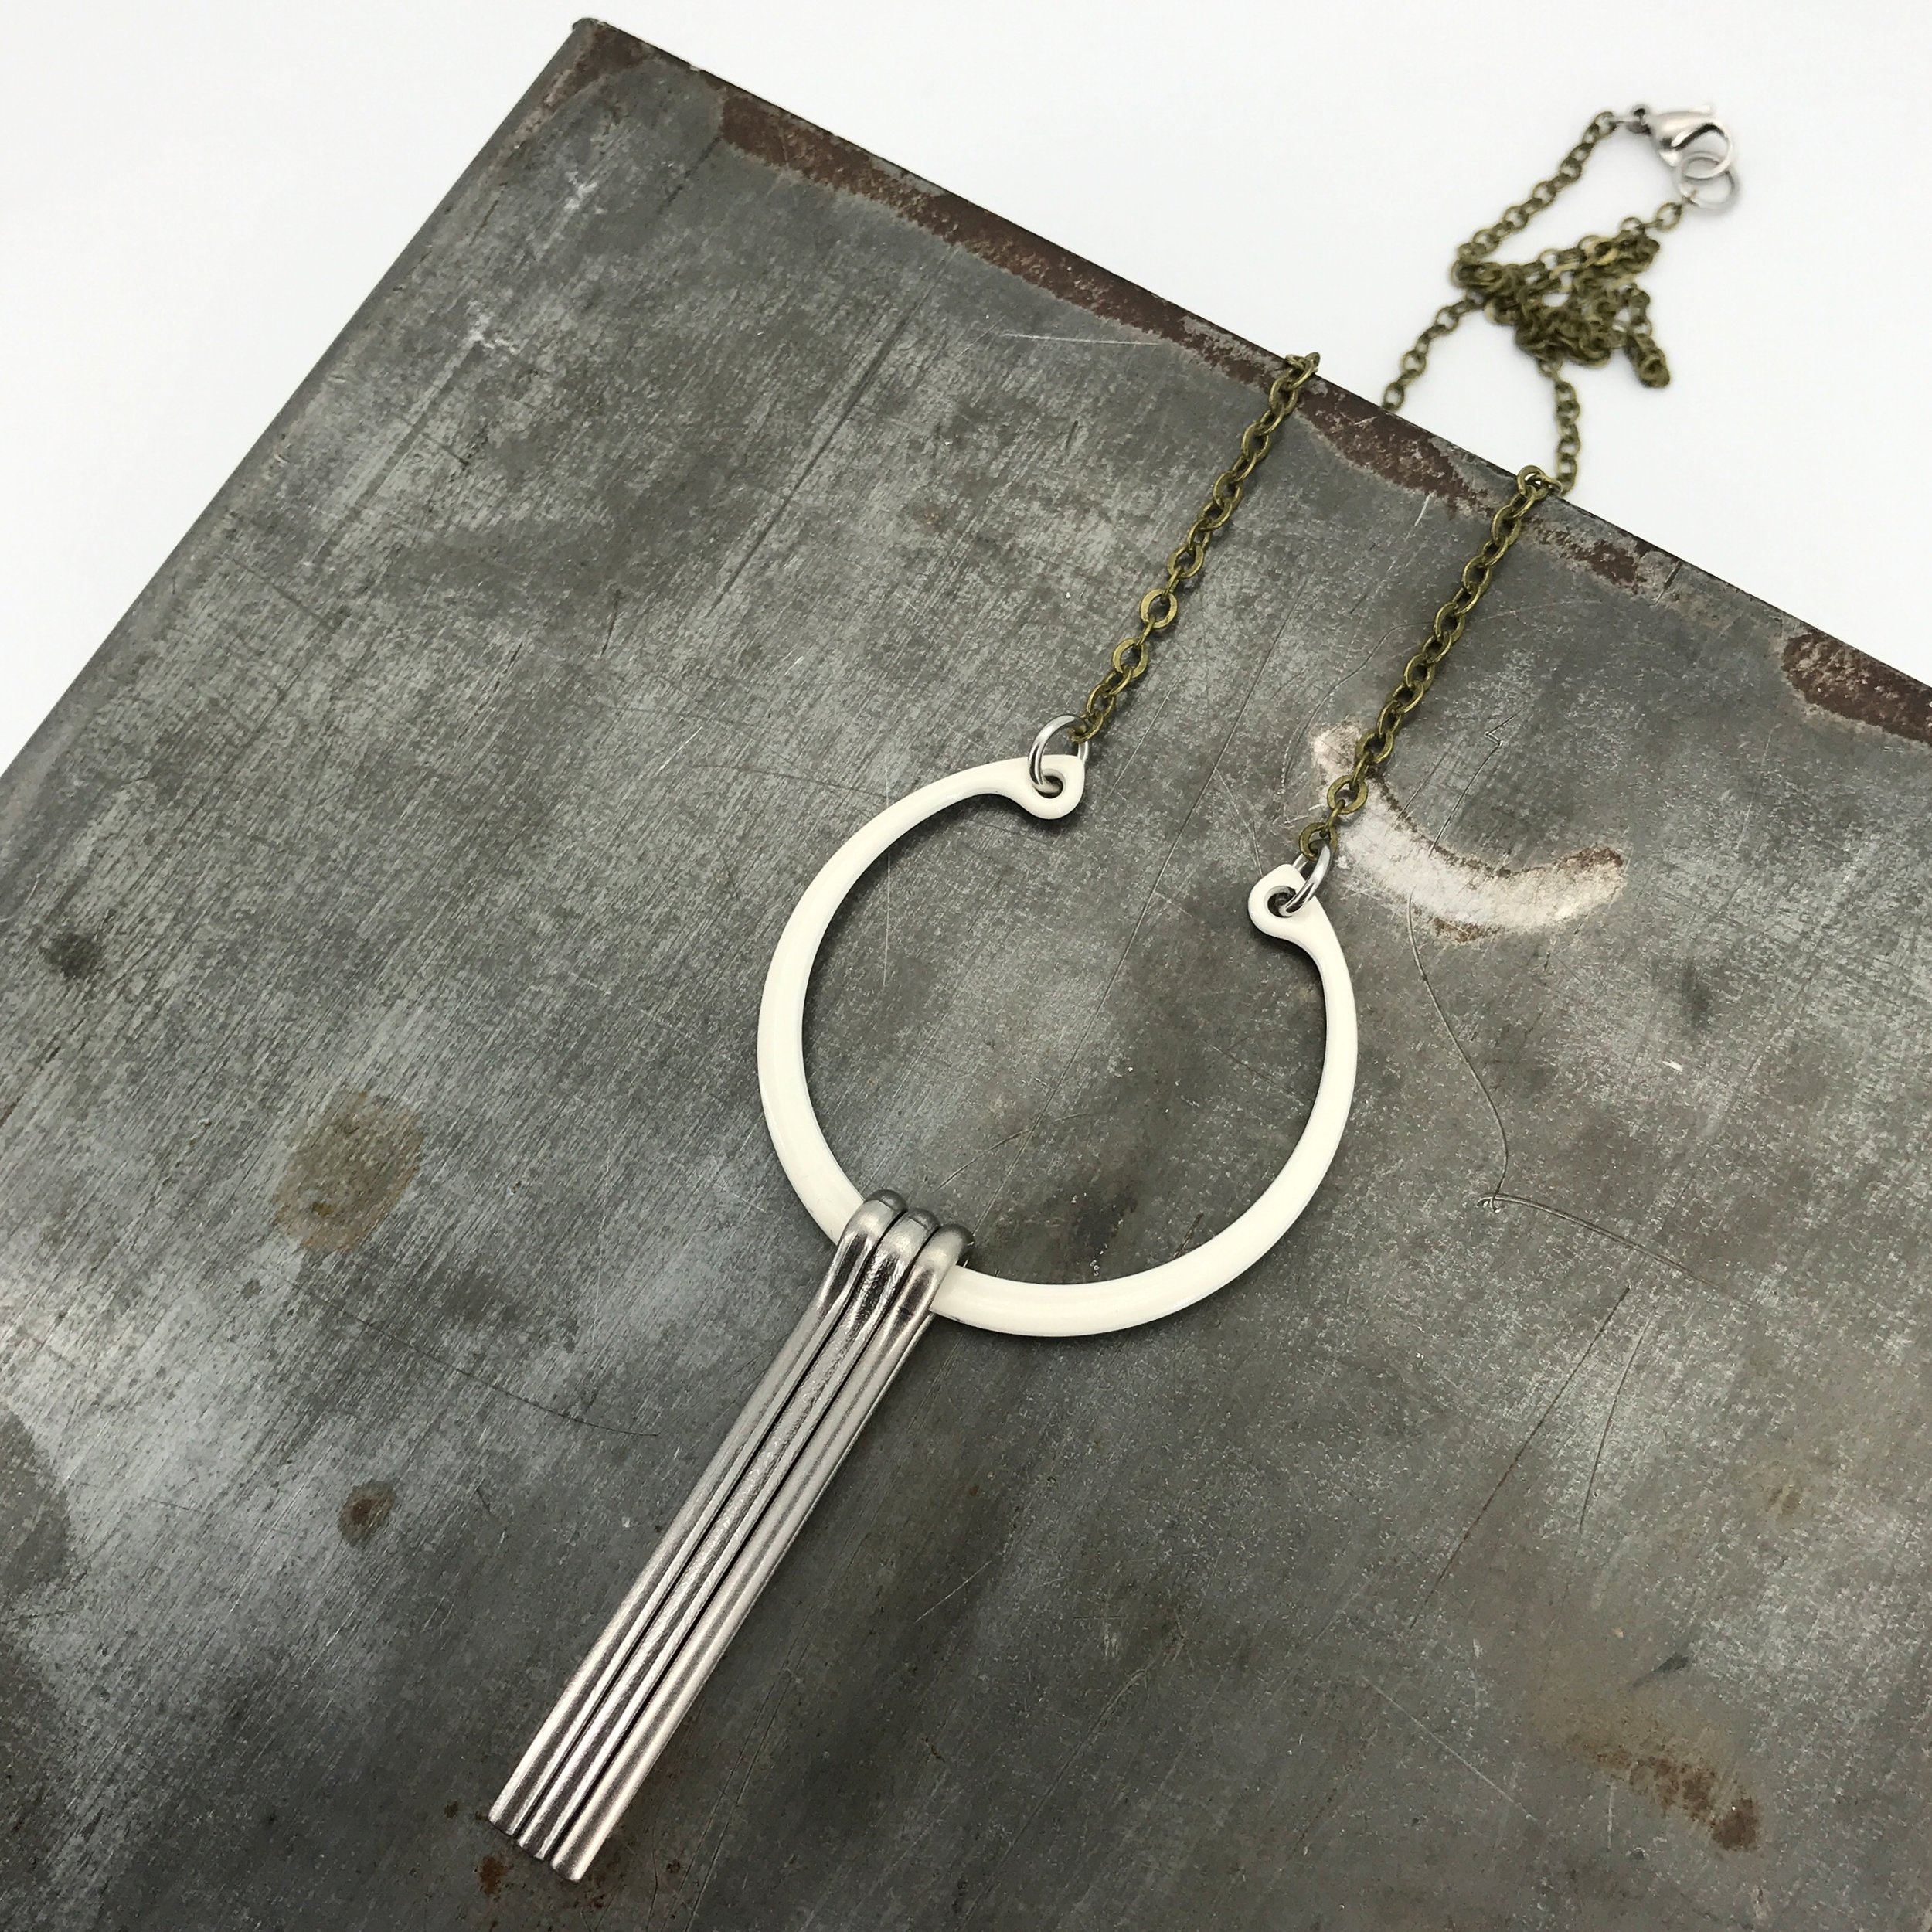 Centro necklace, cream powder coated steel ring with stainless steel pins, oxidized brass chain, $65